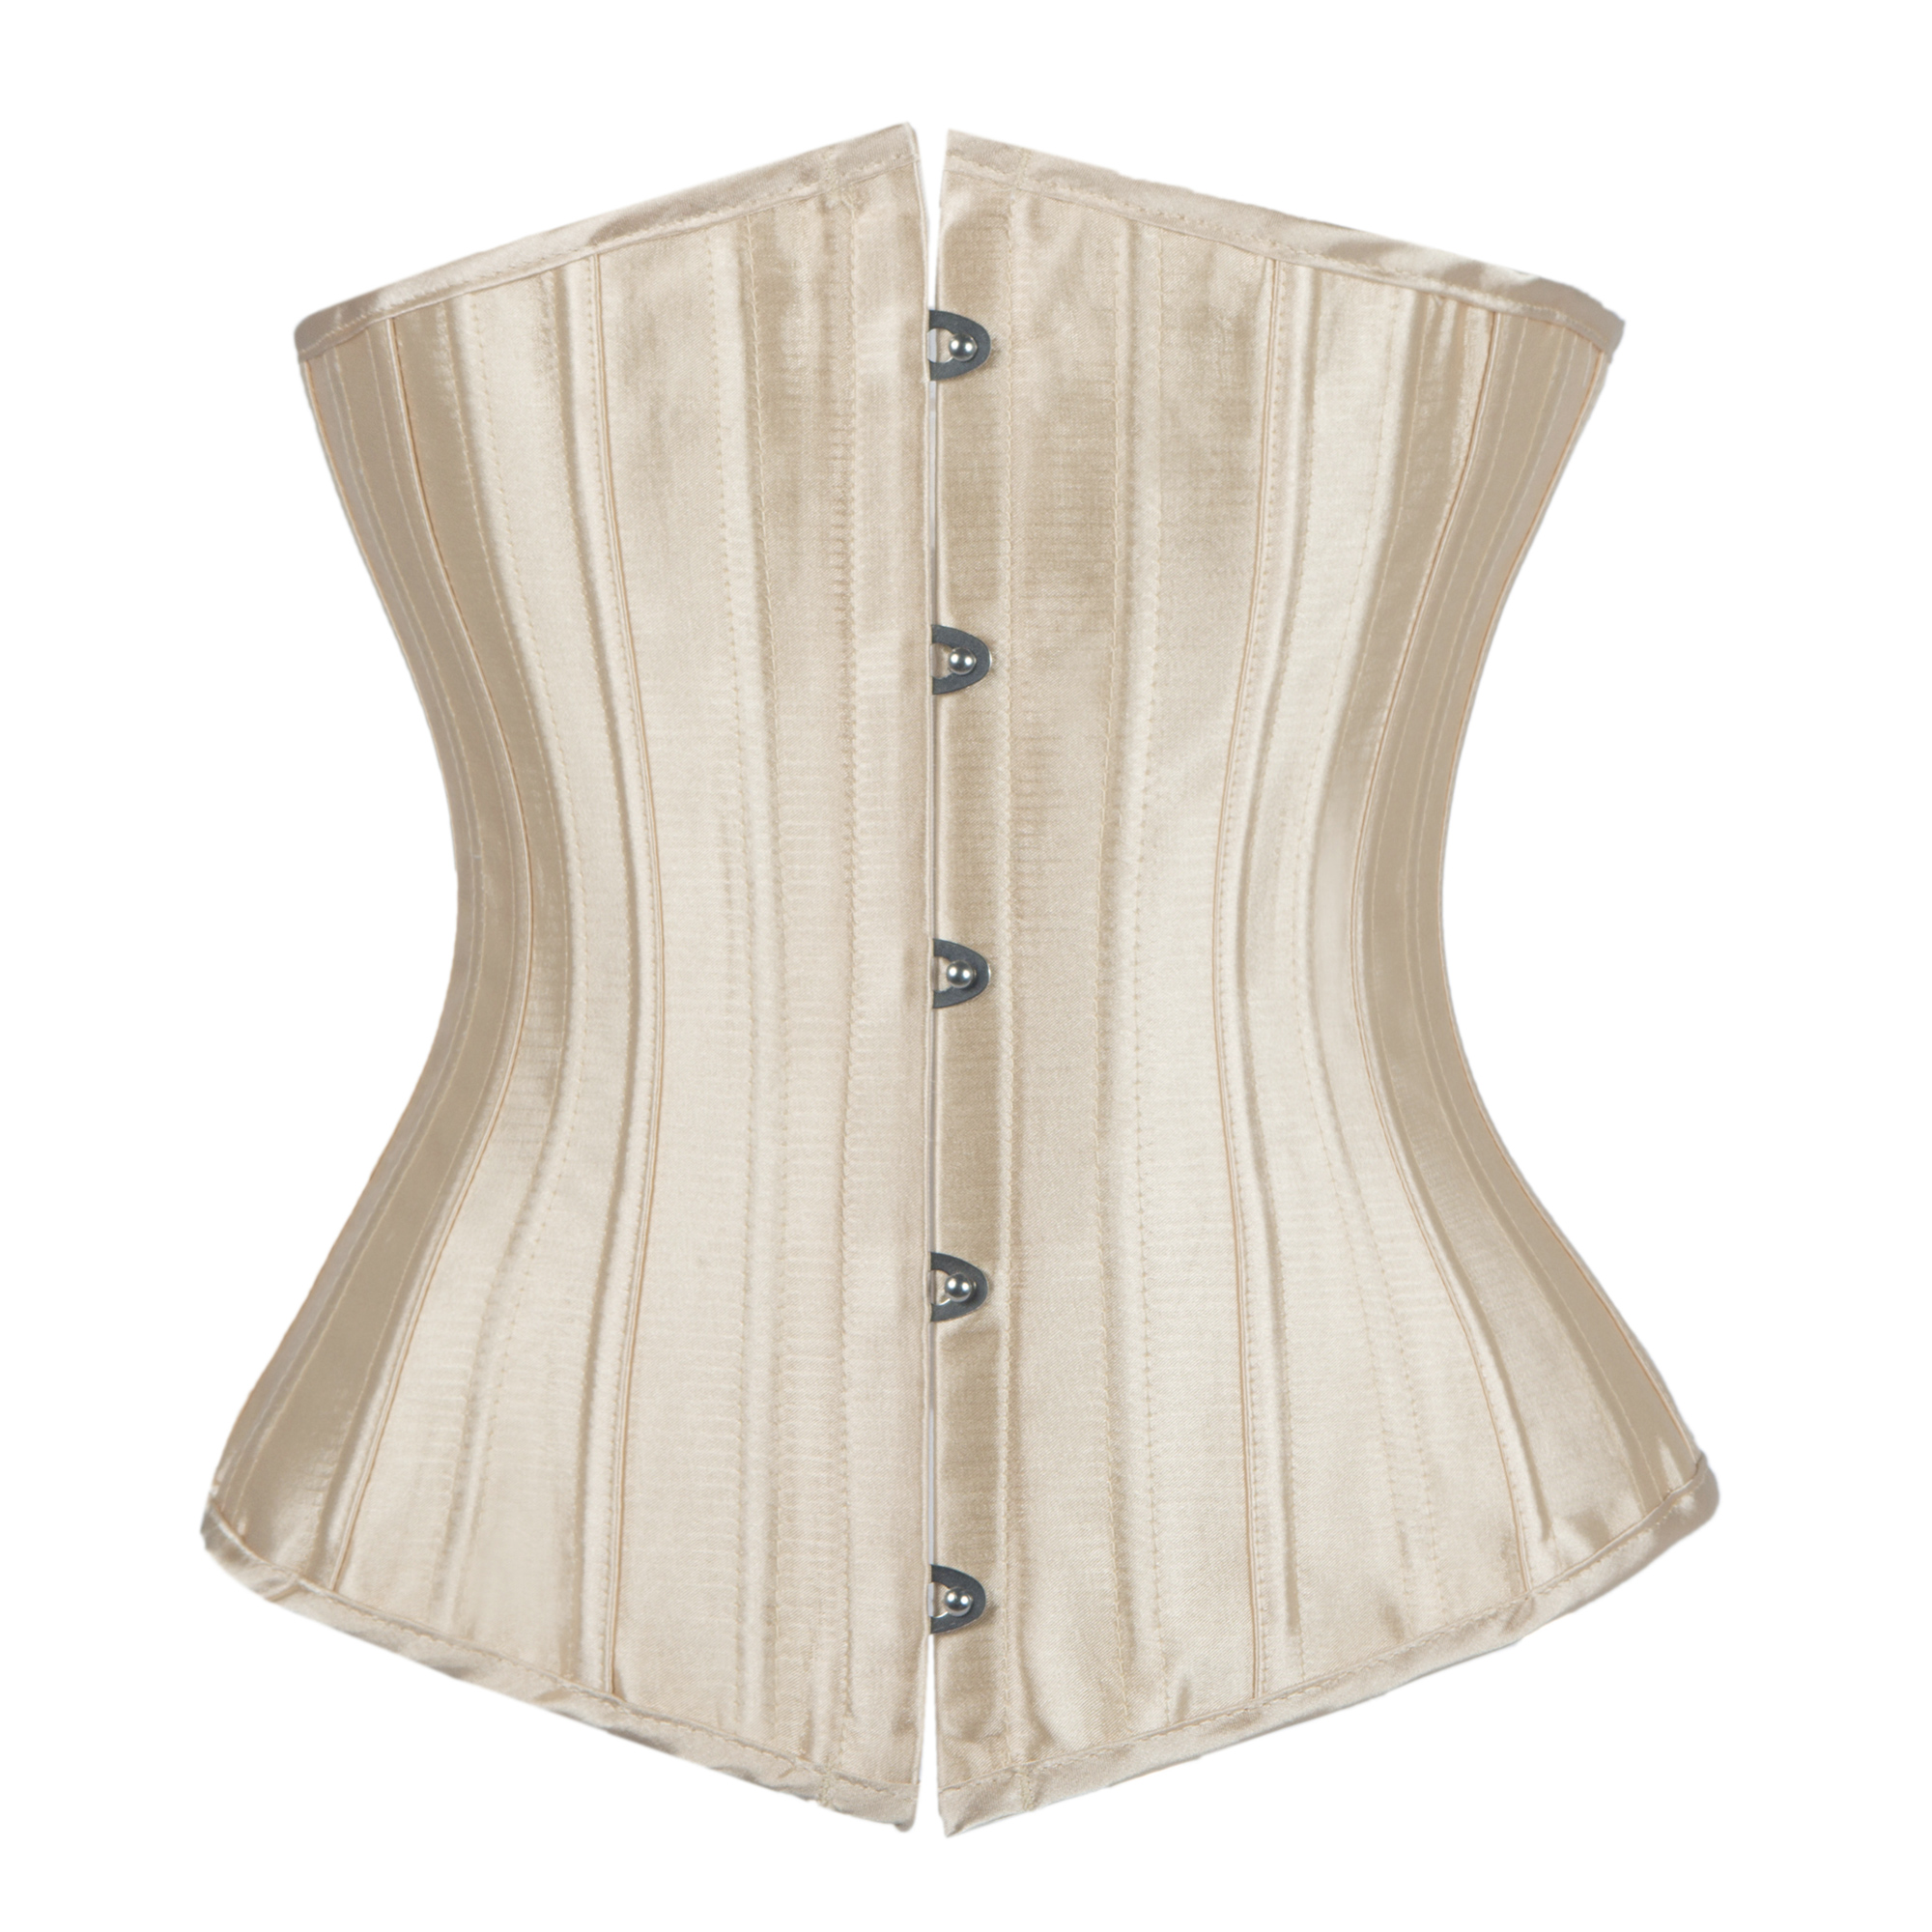 SAYFUT Fashion Womens Sexy Body Shaper Underbust Corset For Weight Loss